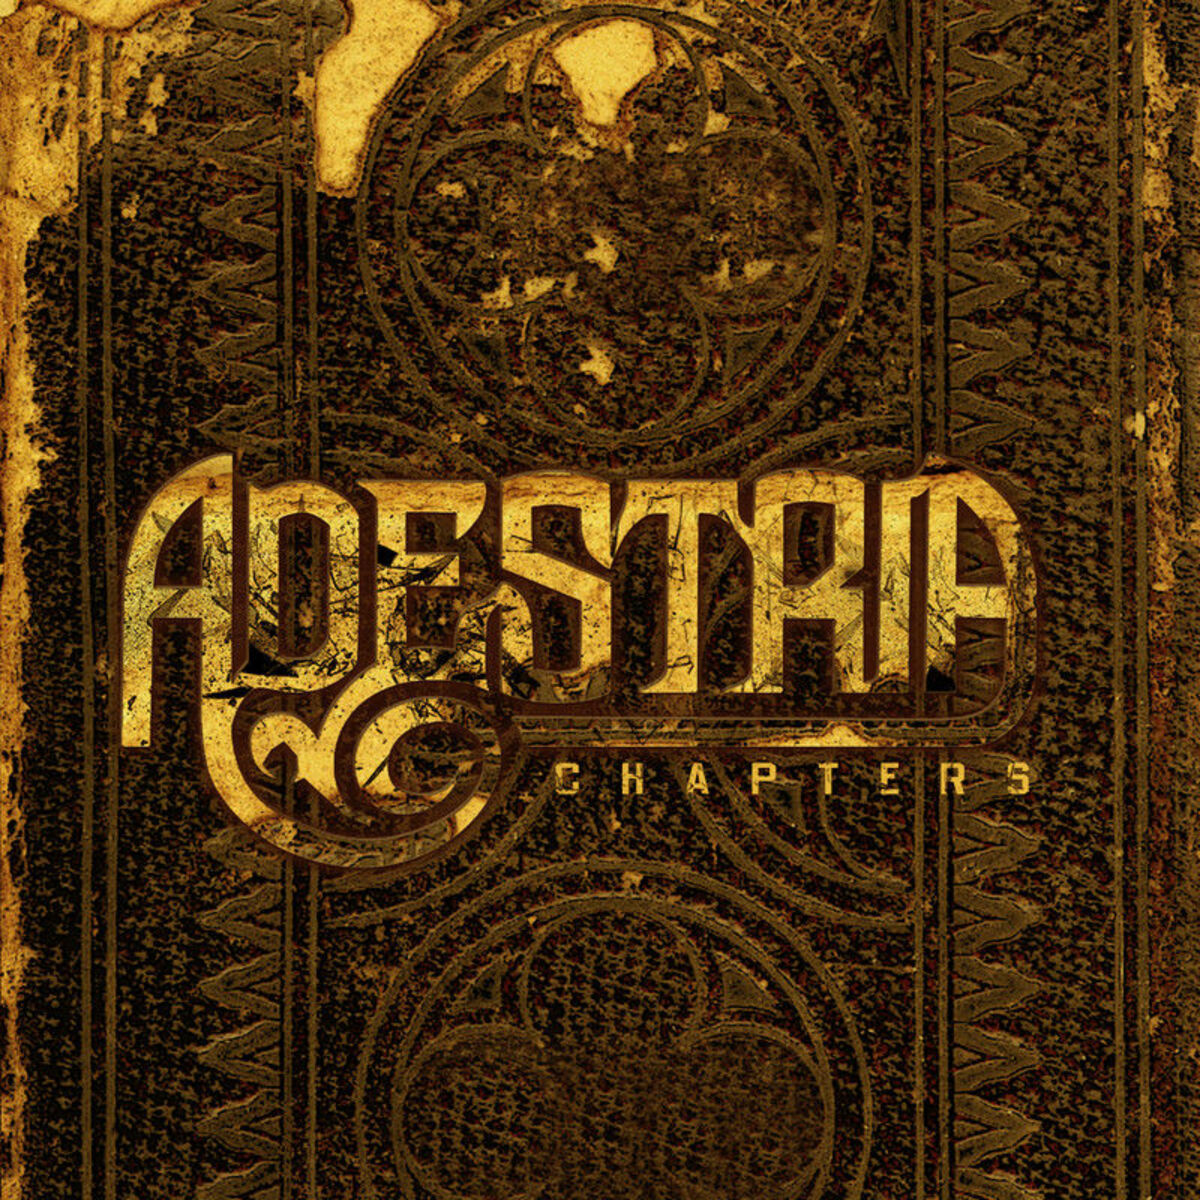 Adestria - Chapters (2012)